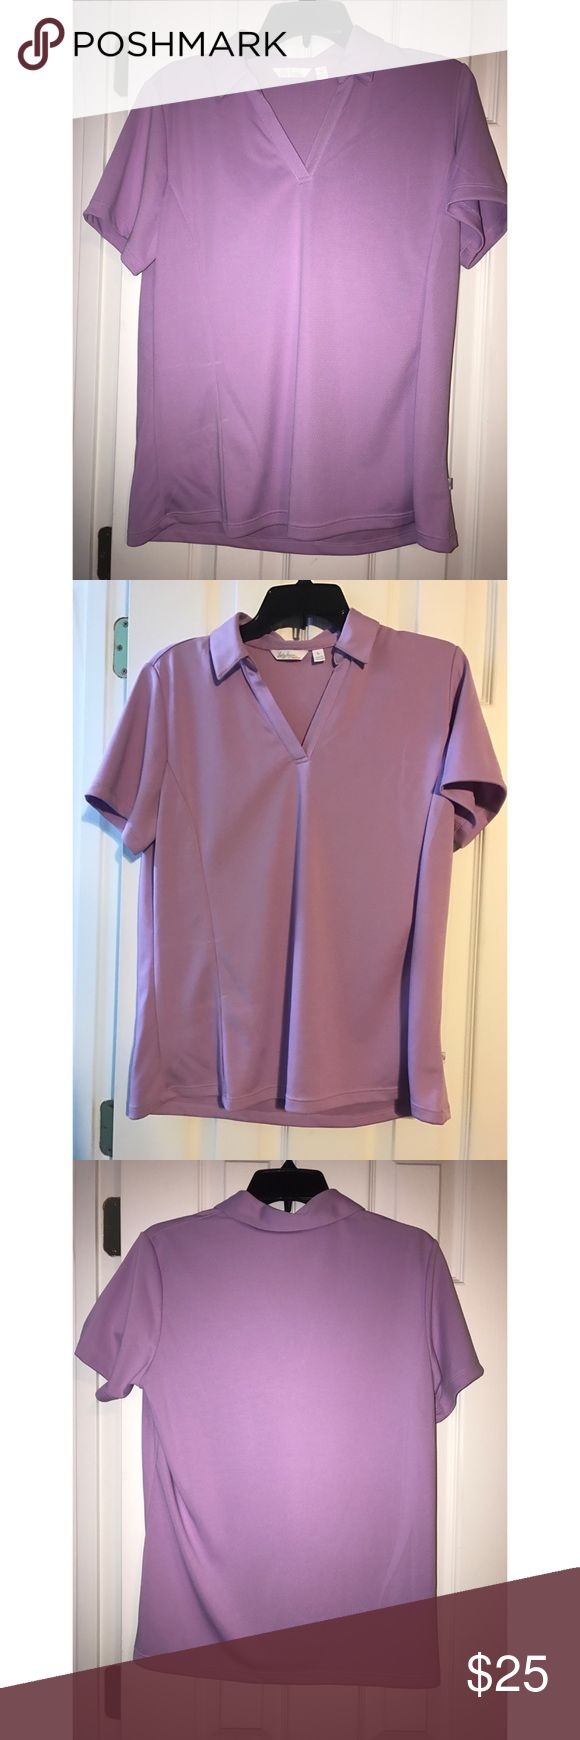 Purple Women's Golf Shirt Dry fit, BRAND NEW AND NEVER WORN! lady hagen Tops Tees - Short Sleeve